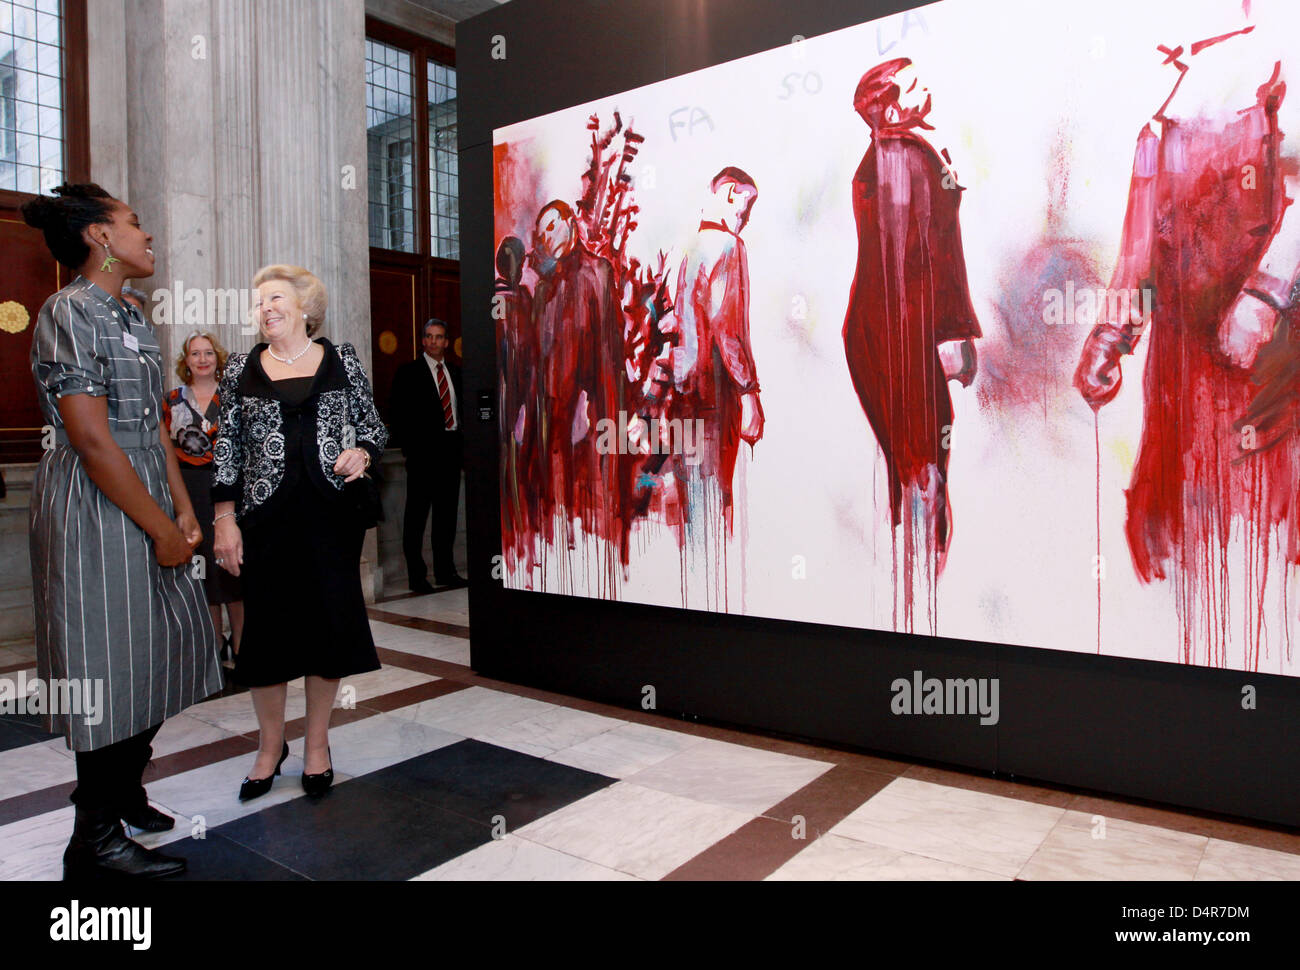 Queen Beatrix of the Netherlands (R) talks with Royal Awards for Painting 2009 laureate Esiri Erheriene-Essie (L) - Stock Image